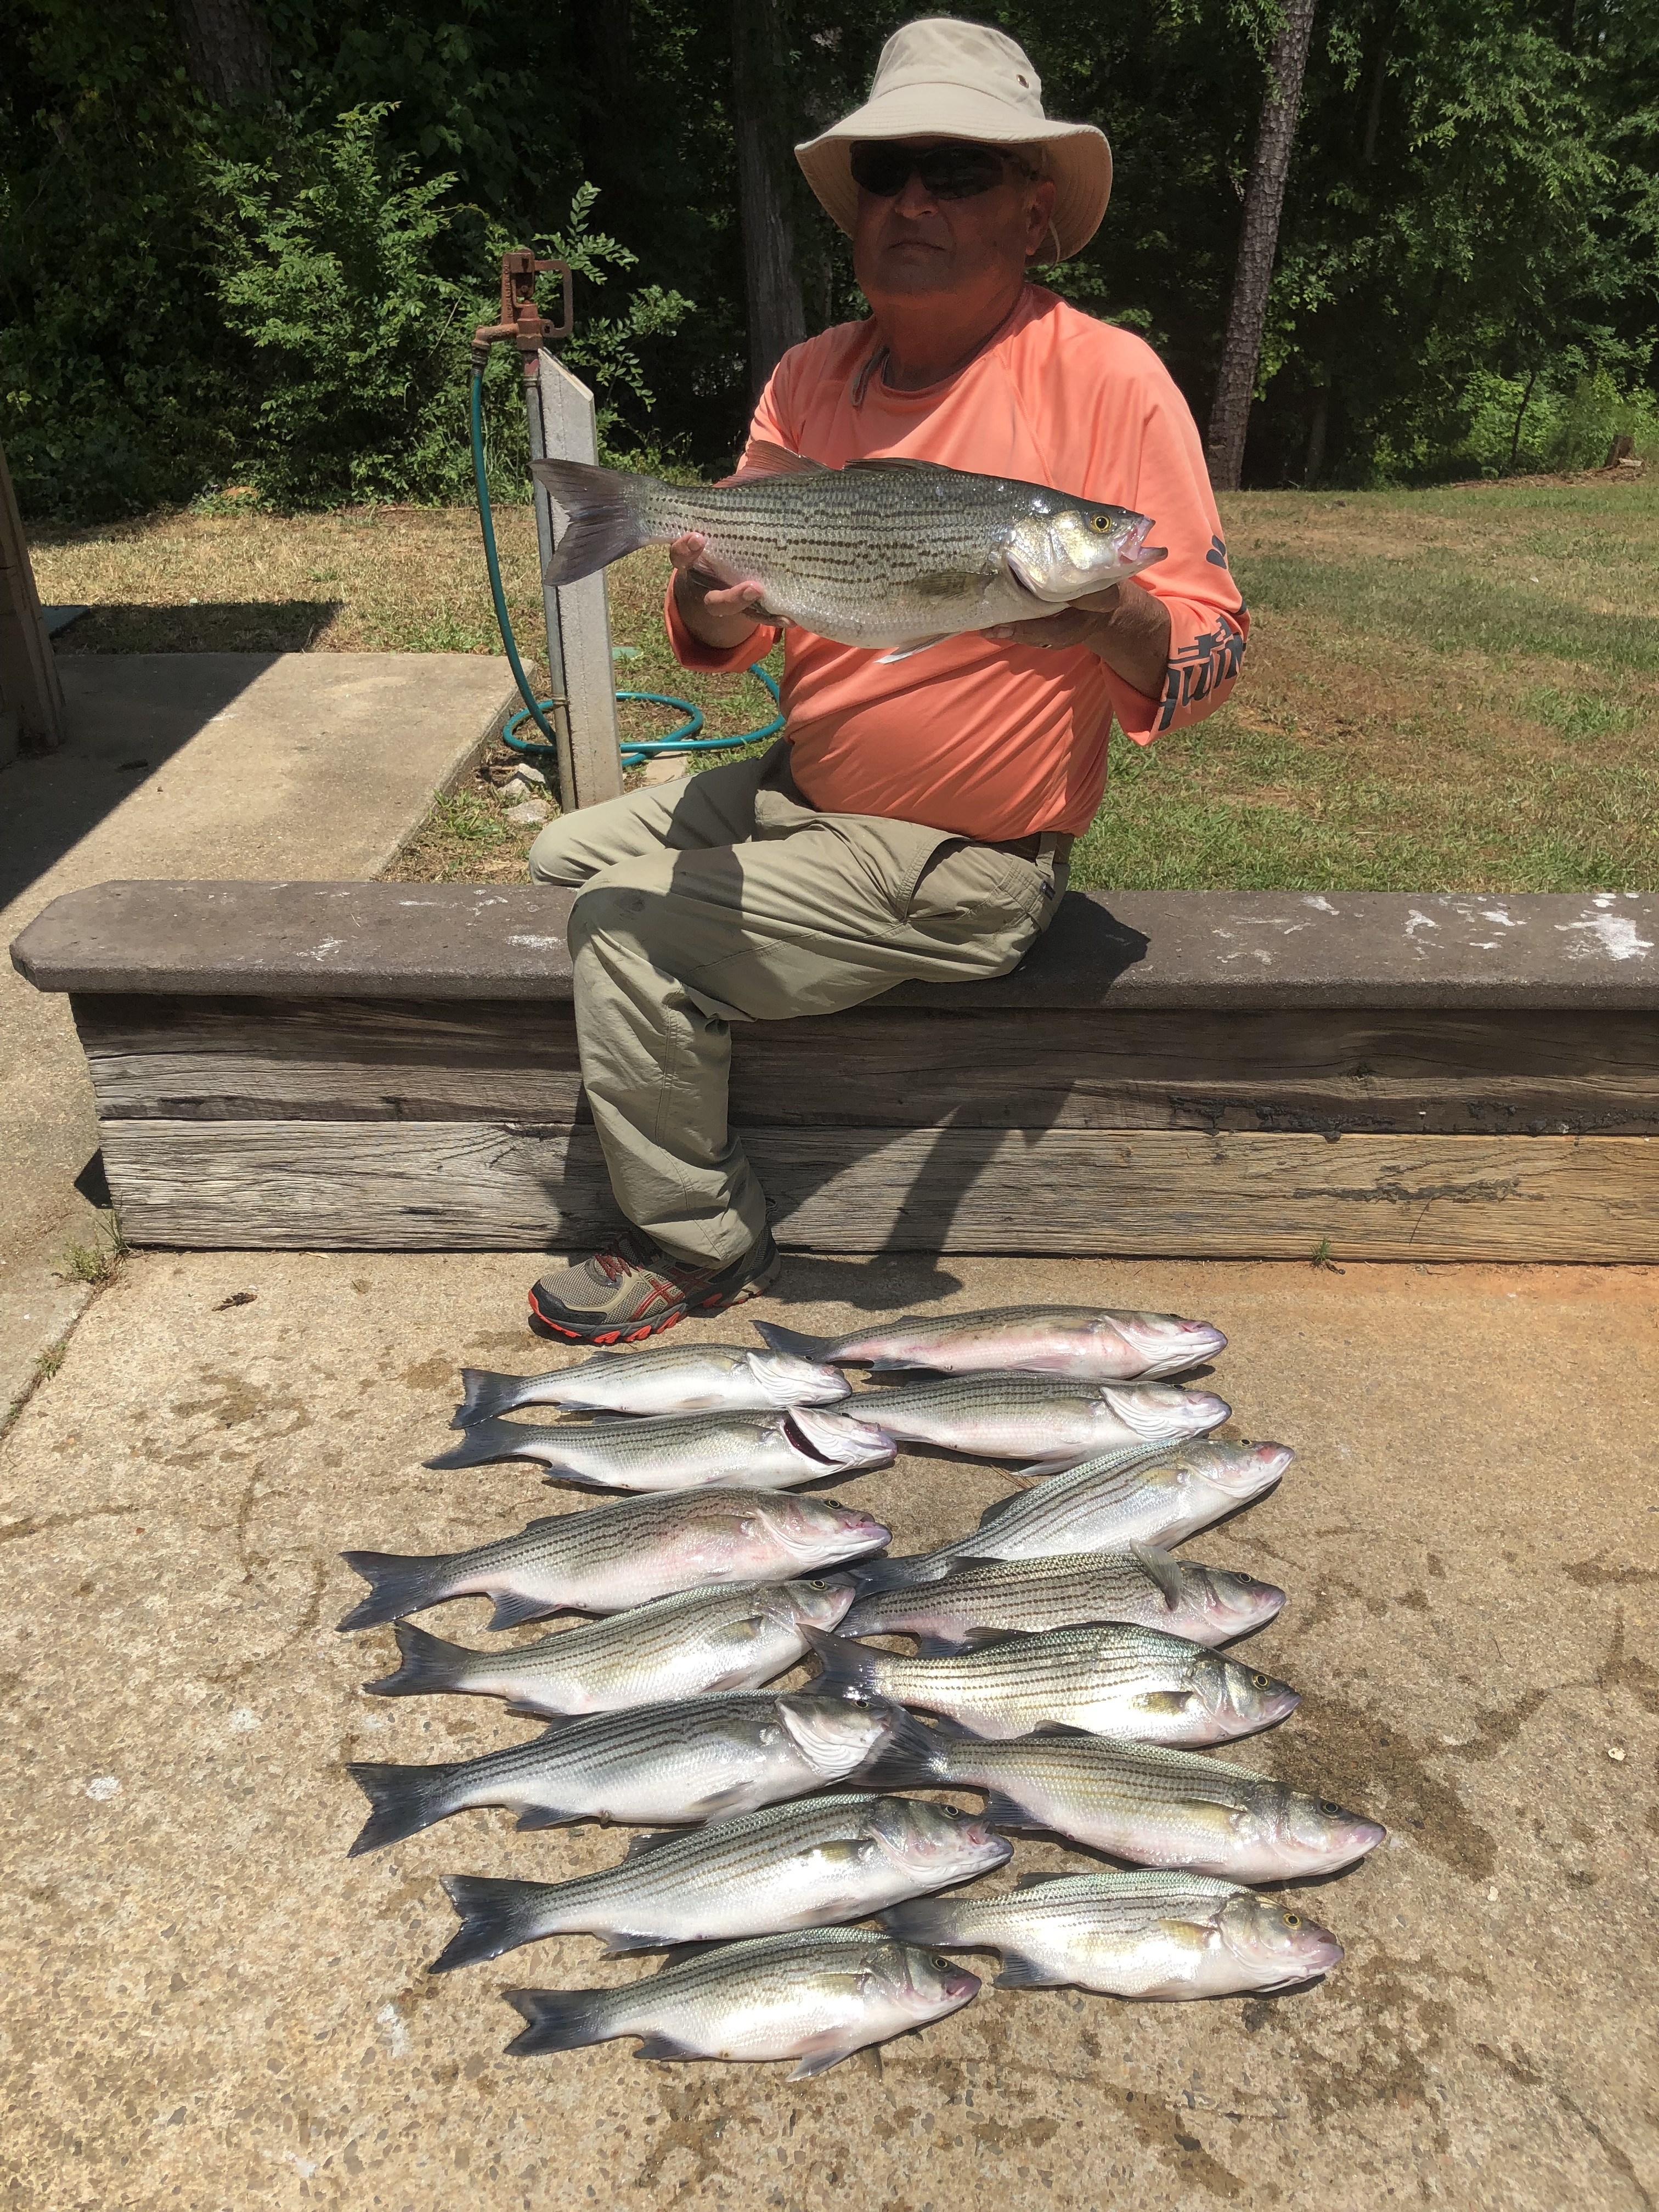 May-4-2019-Ricky-Cleghorn-with-his-catch-of-the-day